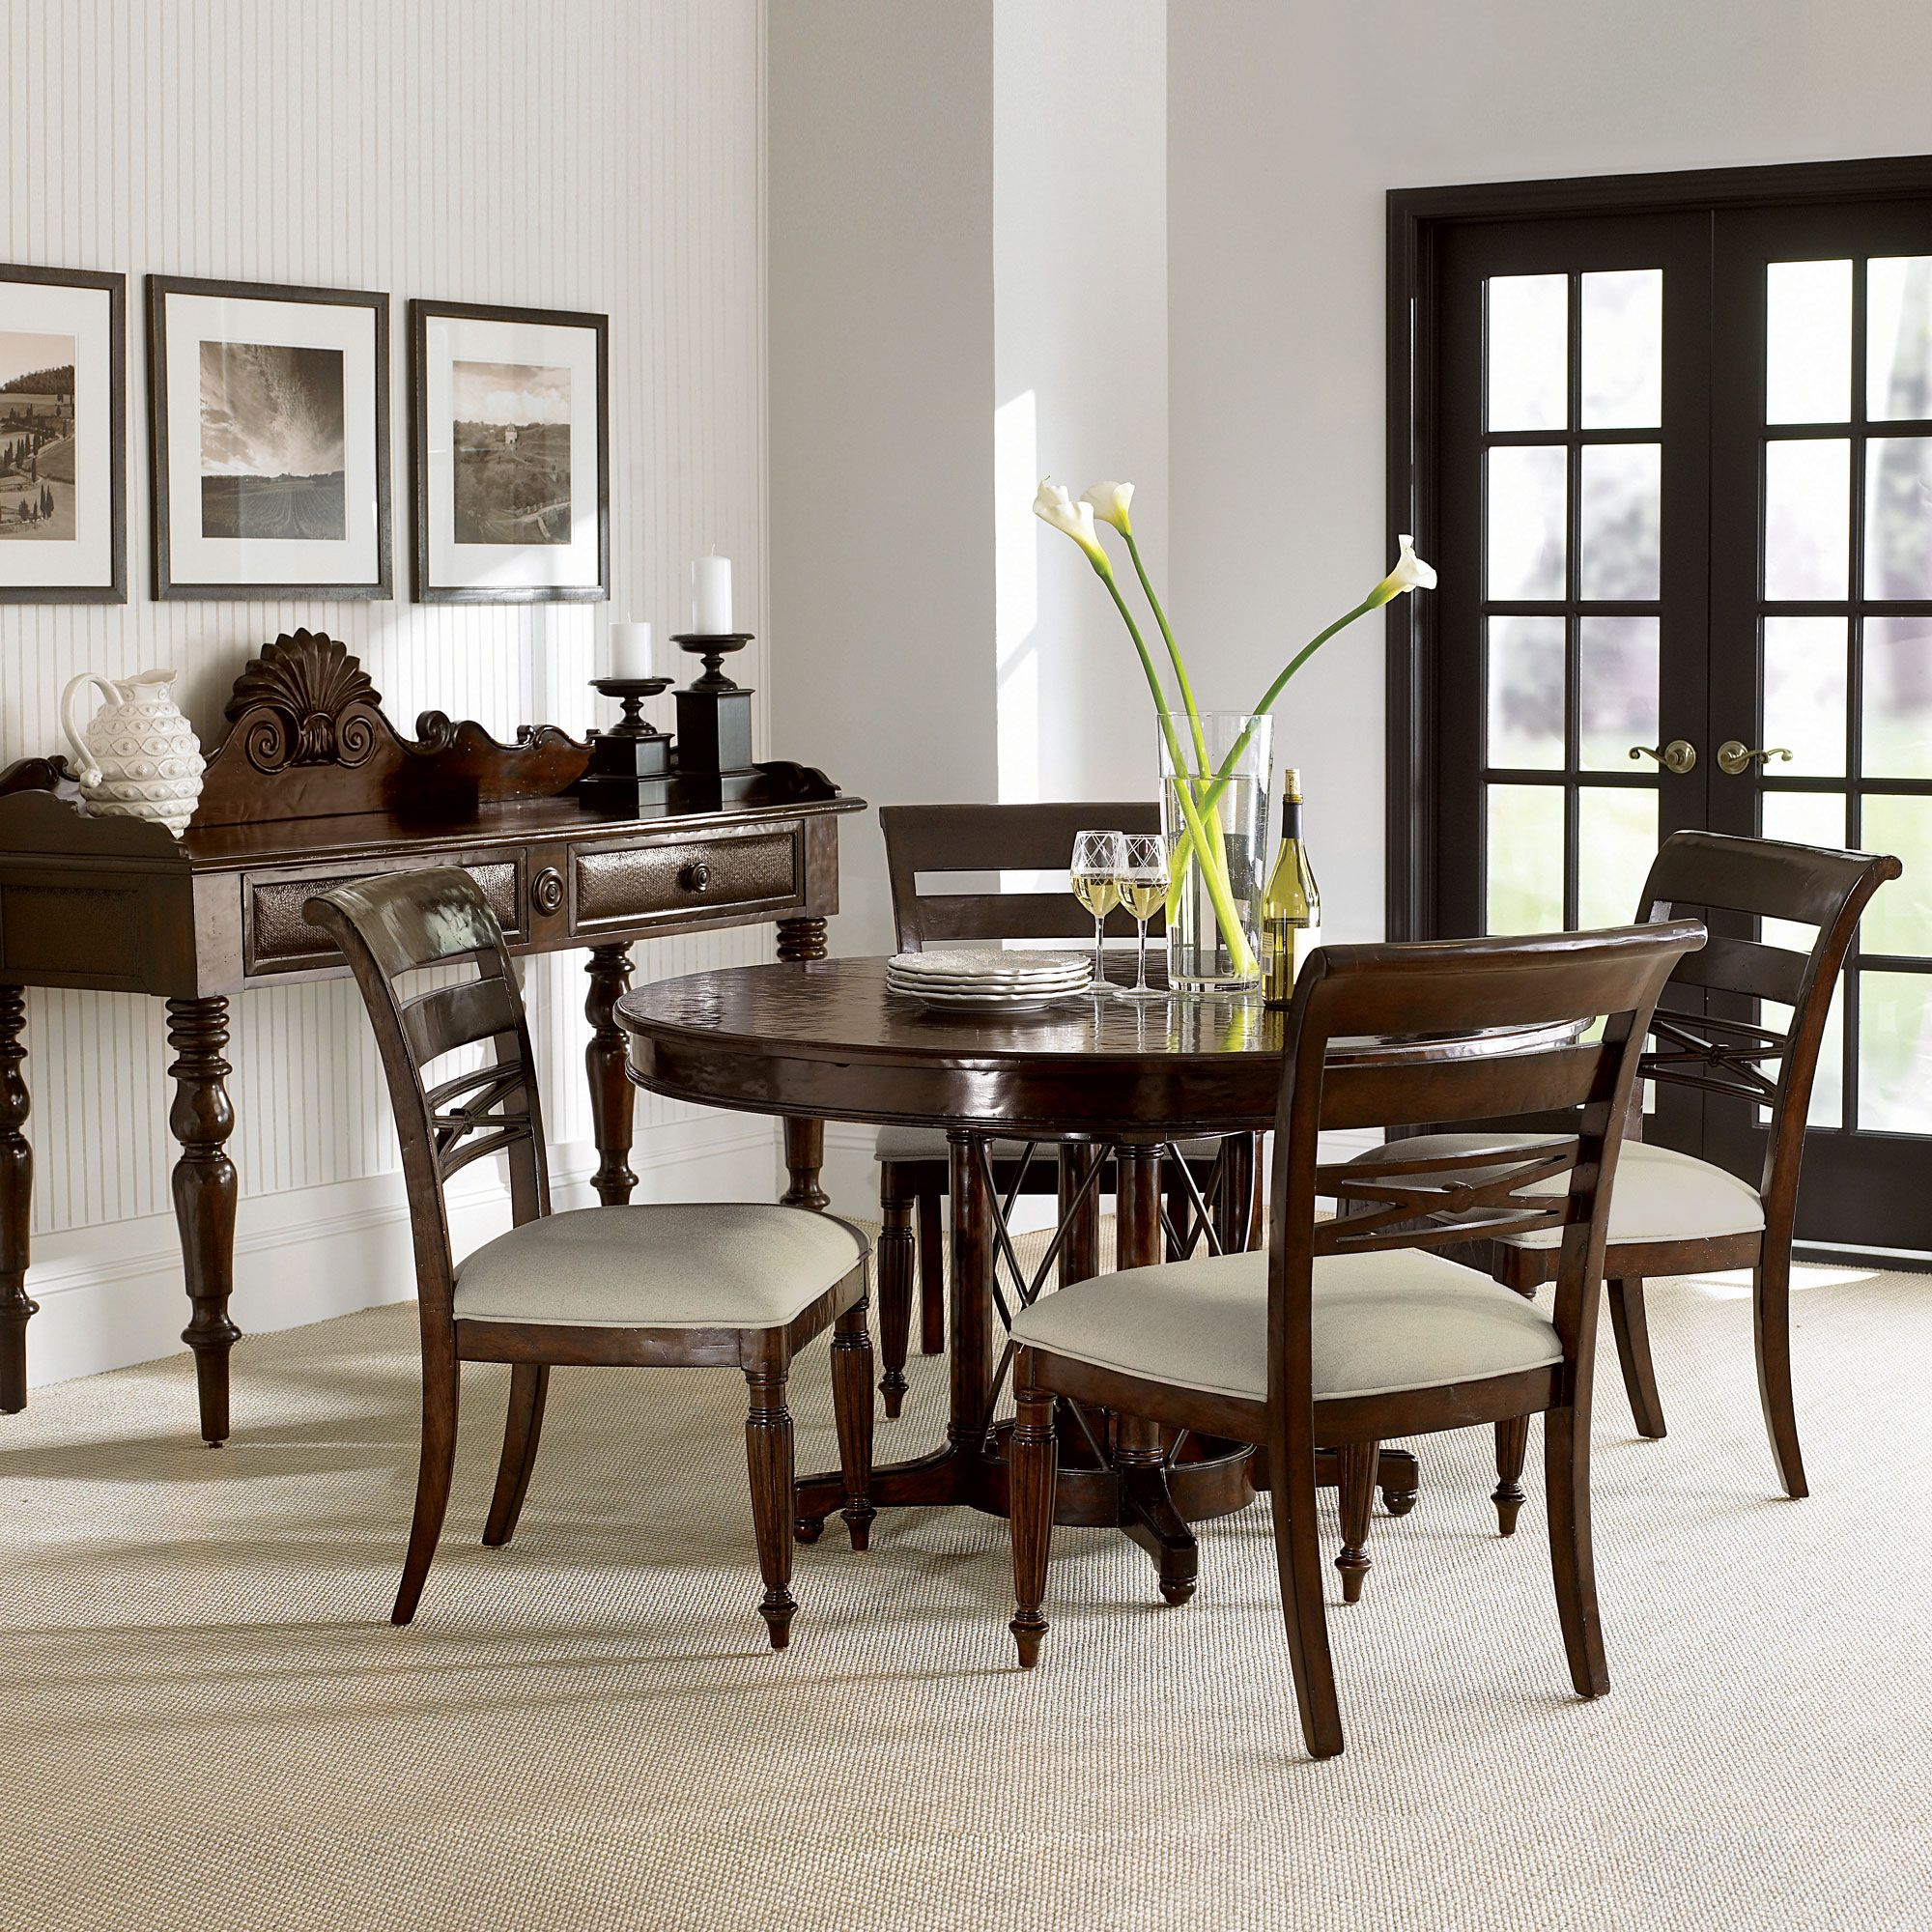 Bernhardt somerset hill dining room setting cherabellas pinterest specializing in high style furniture at an affordable price showrooms in houston austin san antonio and bryan texas dzzzfo